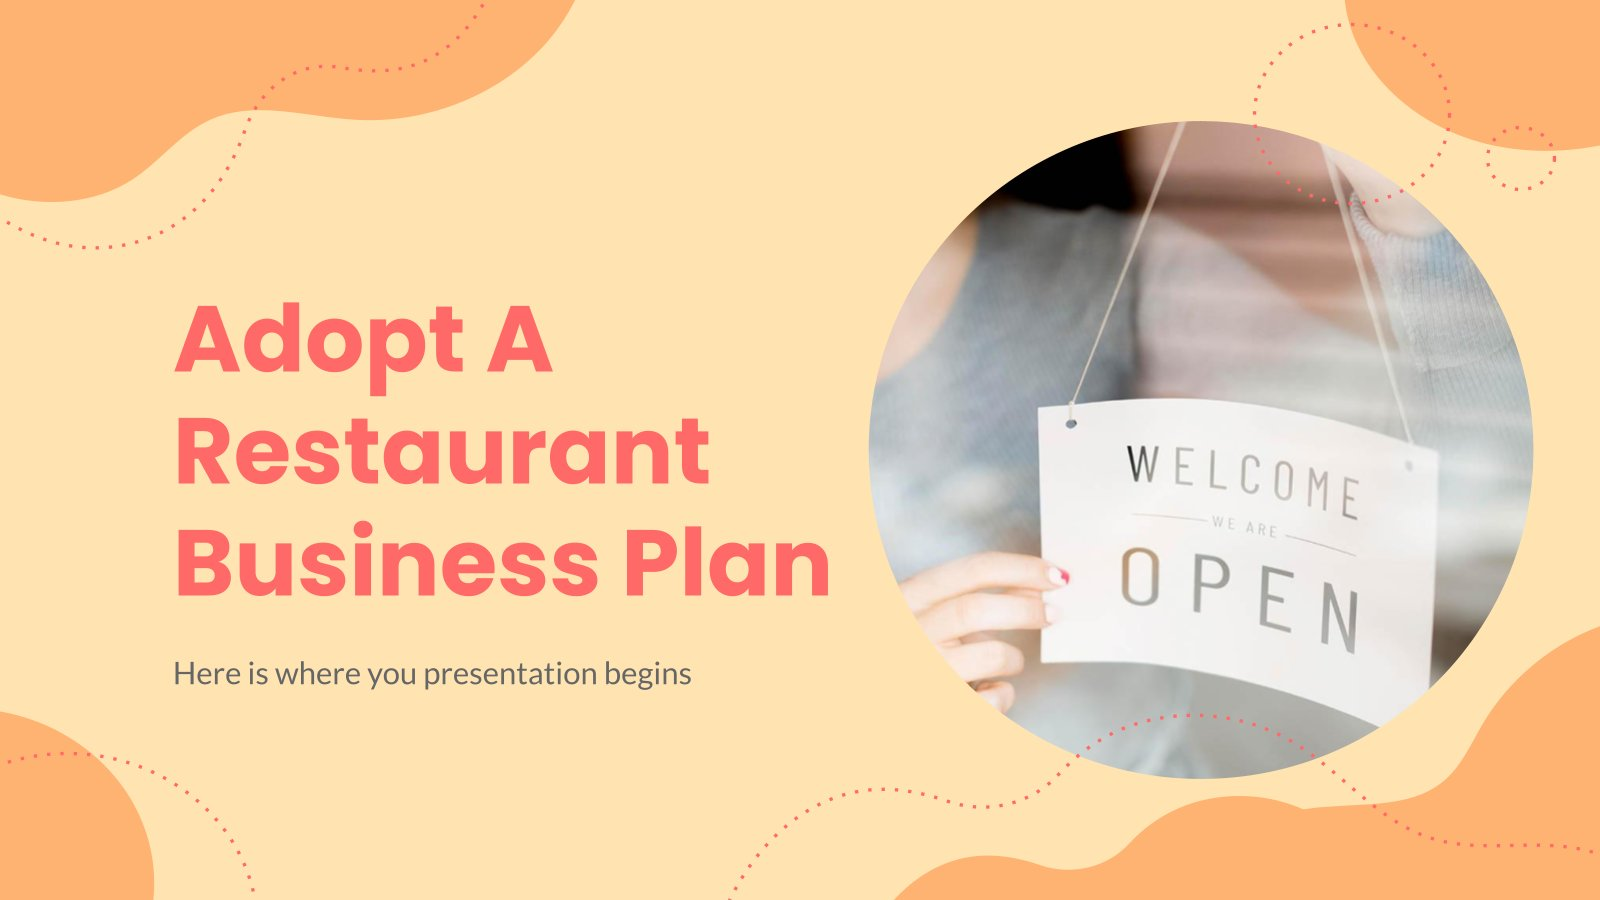 Adopt A Restaurant Business Plan presentation template